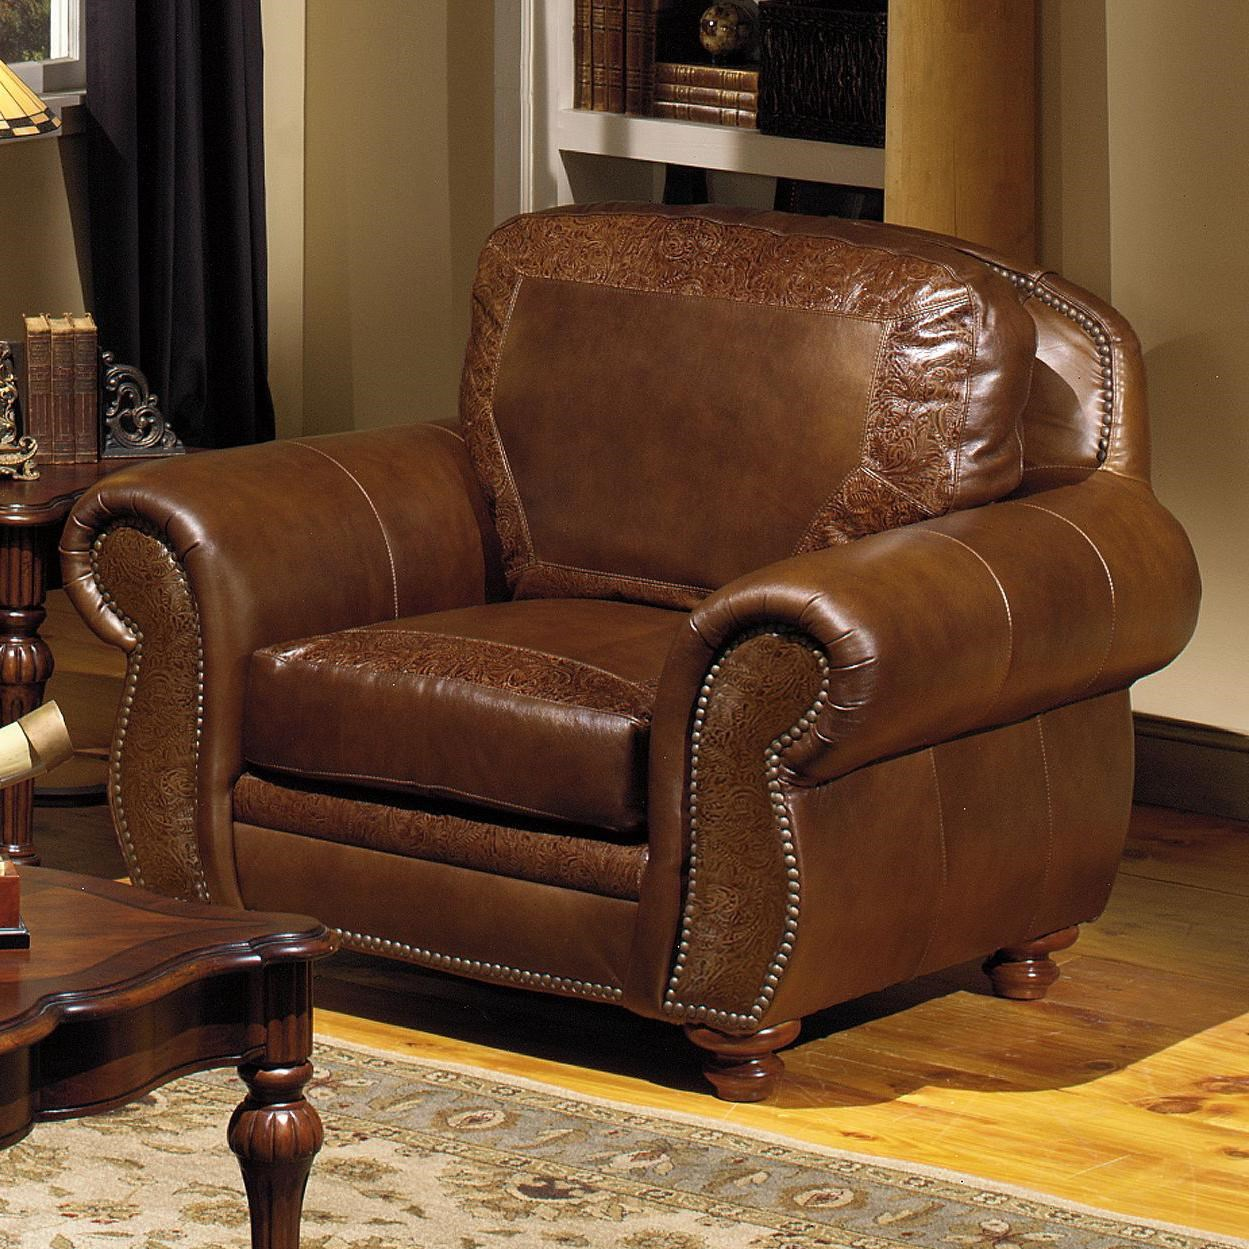 USA Premium Leather 8555 Traditional Leather Chair with Nailhead Trim & USA Premium Leather 8555 Traditional Leather Chair with Nailhead ...